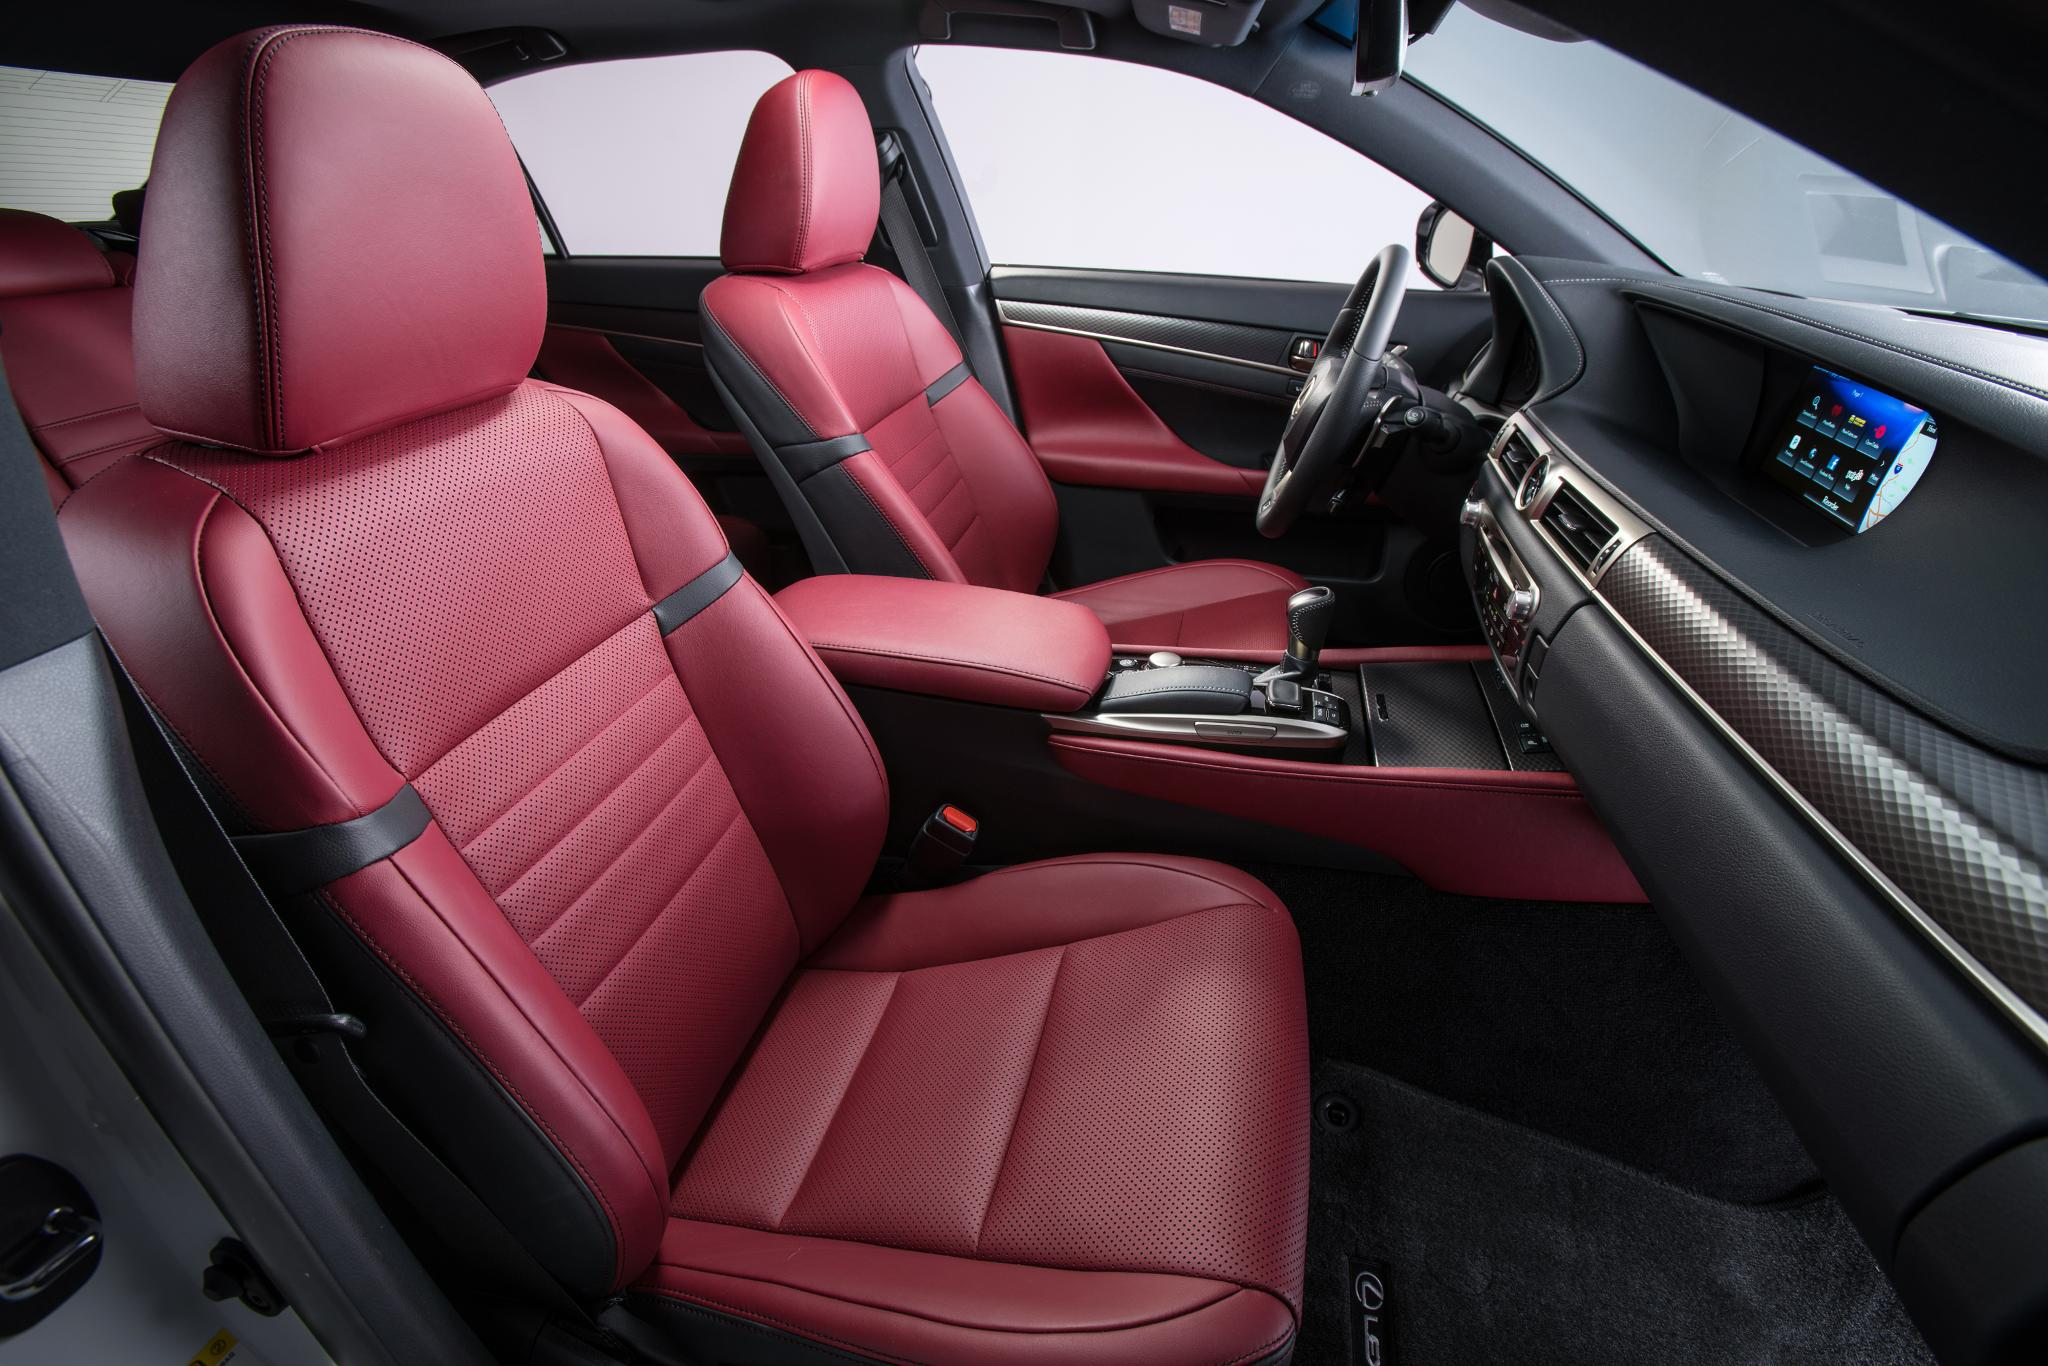 Red leather is in. #LexusGS 450h F SPORT https://t.co/zuMOfJE6U6